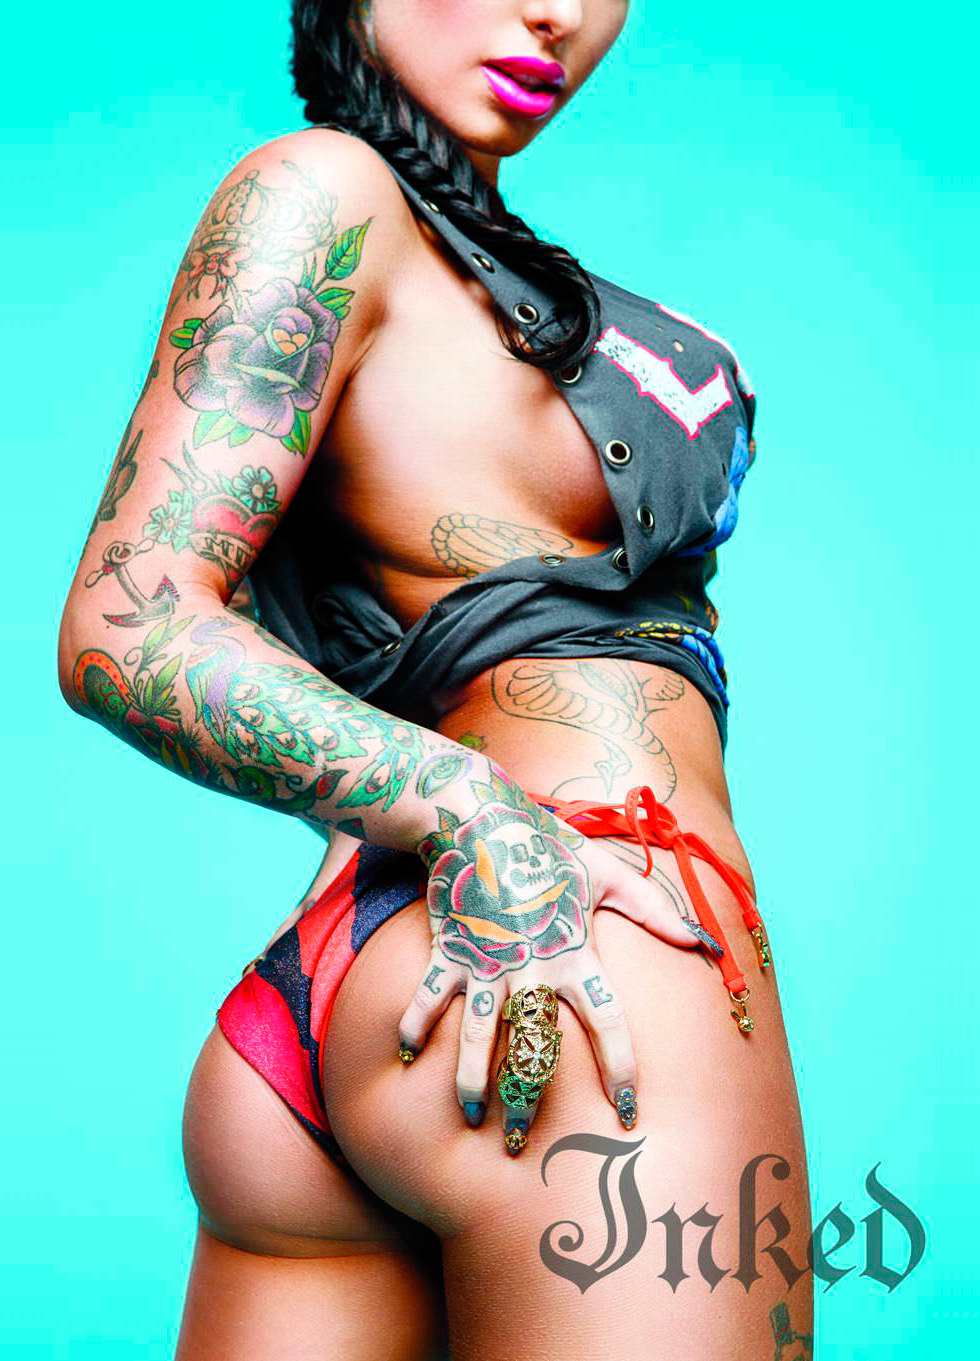 christy mack inkedmag